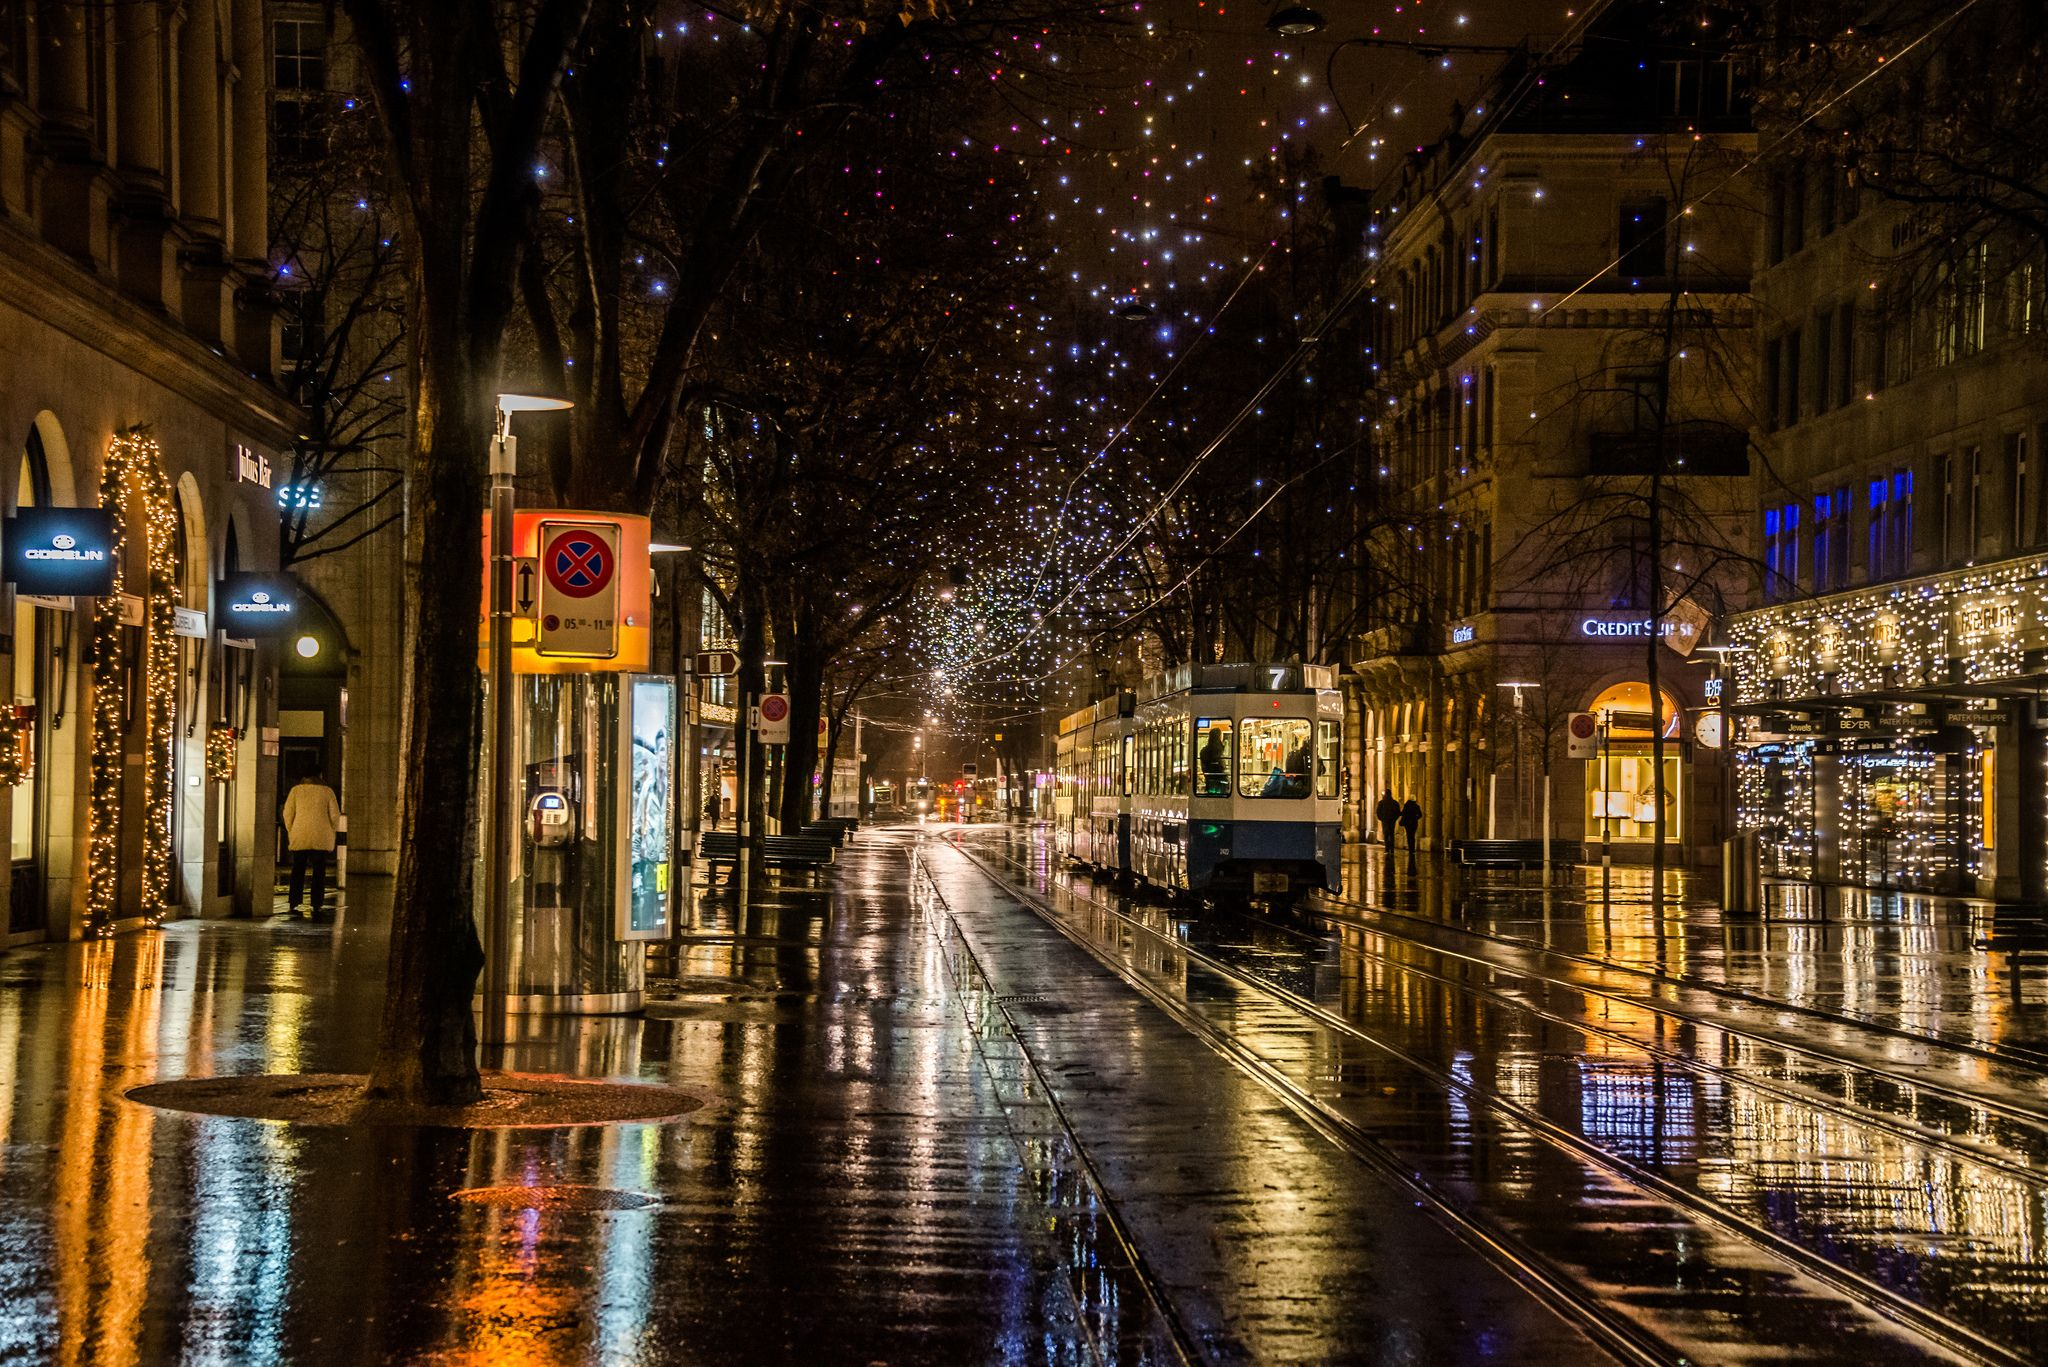 City Rain Wallpapers - Top Free City Rain Backgrounds ...